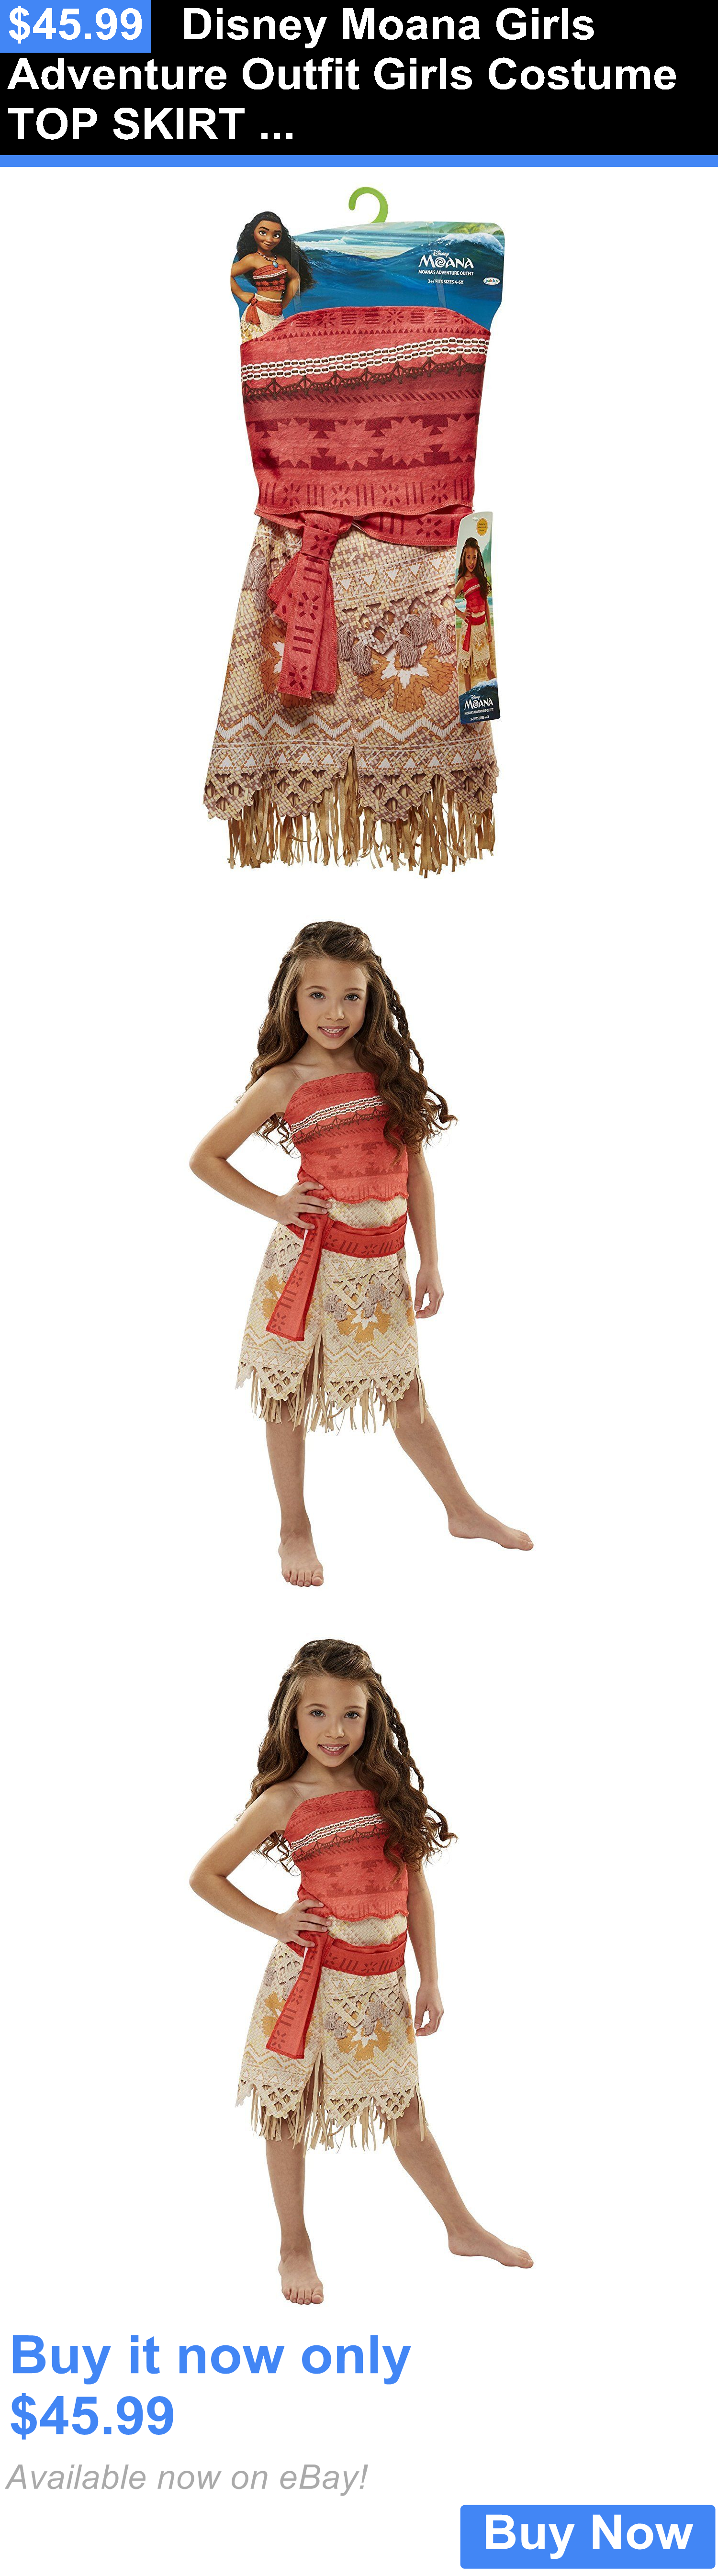 fb2ccde19 Halloween Costumes Kids: Disney Moana Girls Adventure Outfit Girls Costume  Top Skirt 4-6X BUY IT NOW ONLY: $45.99